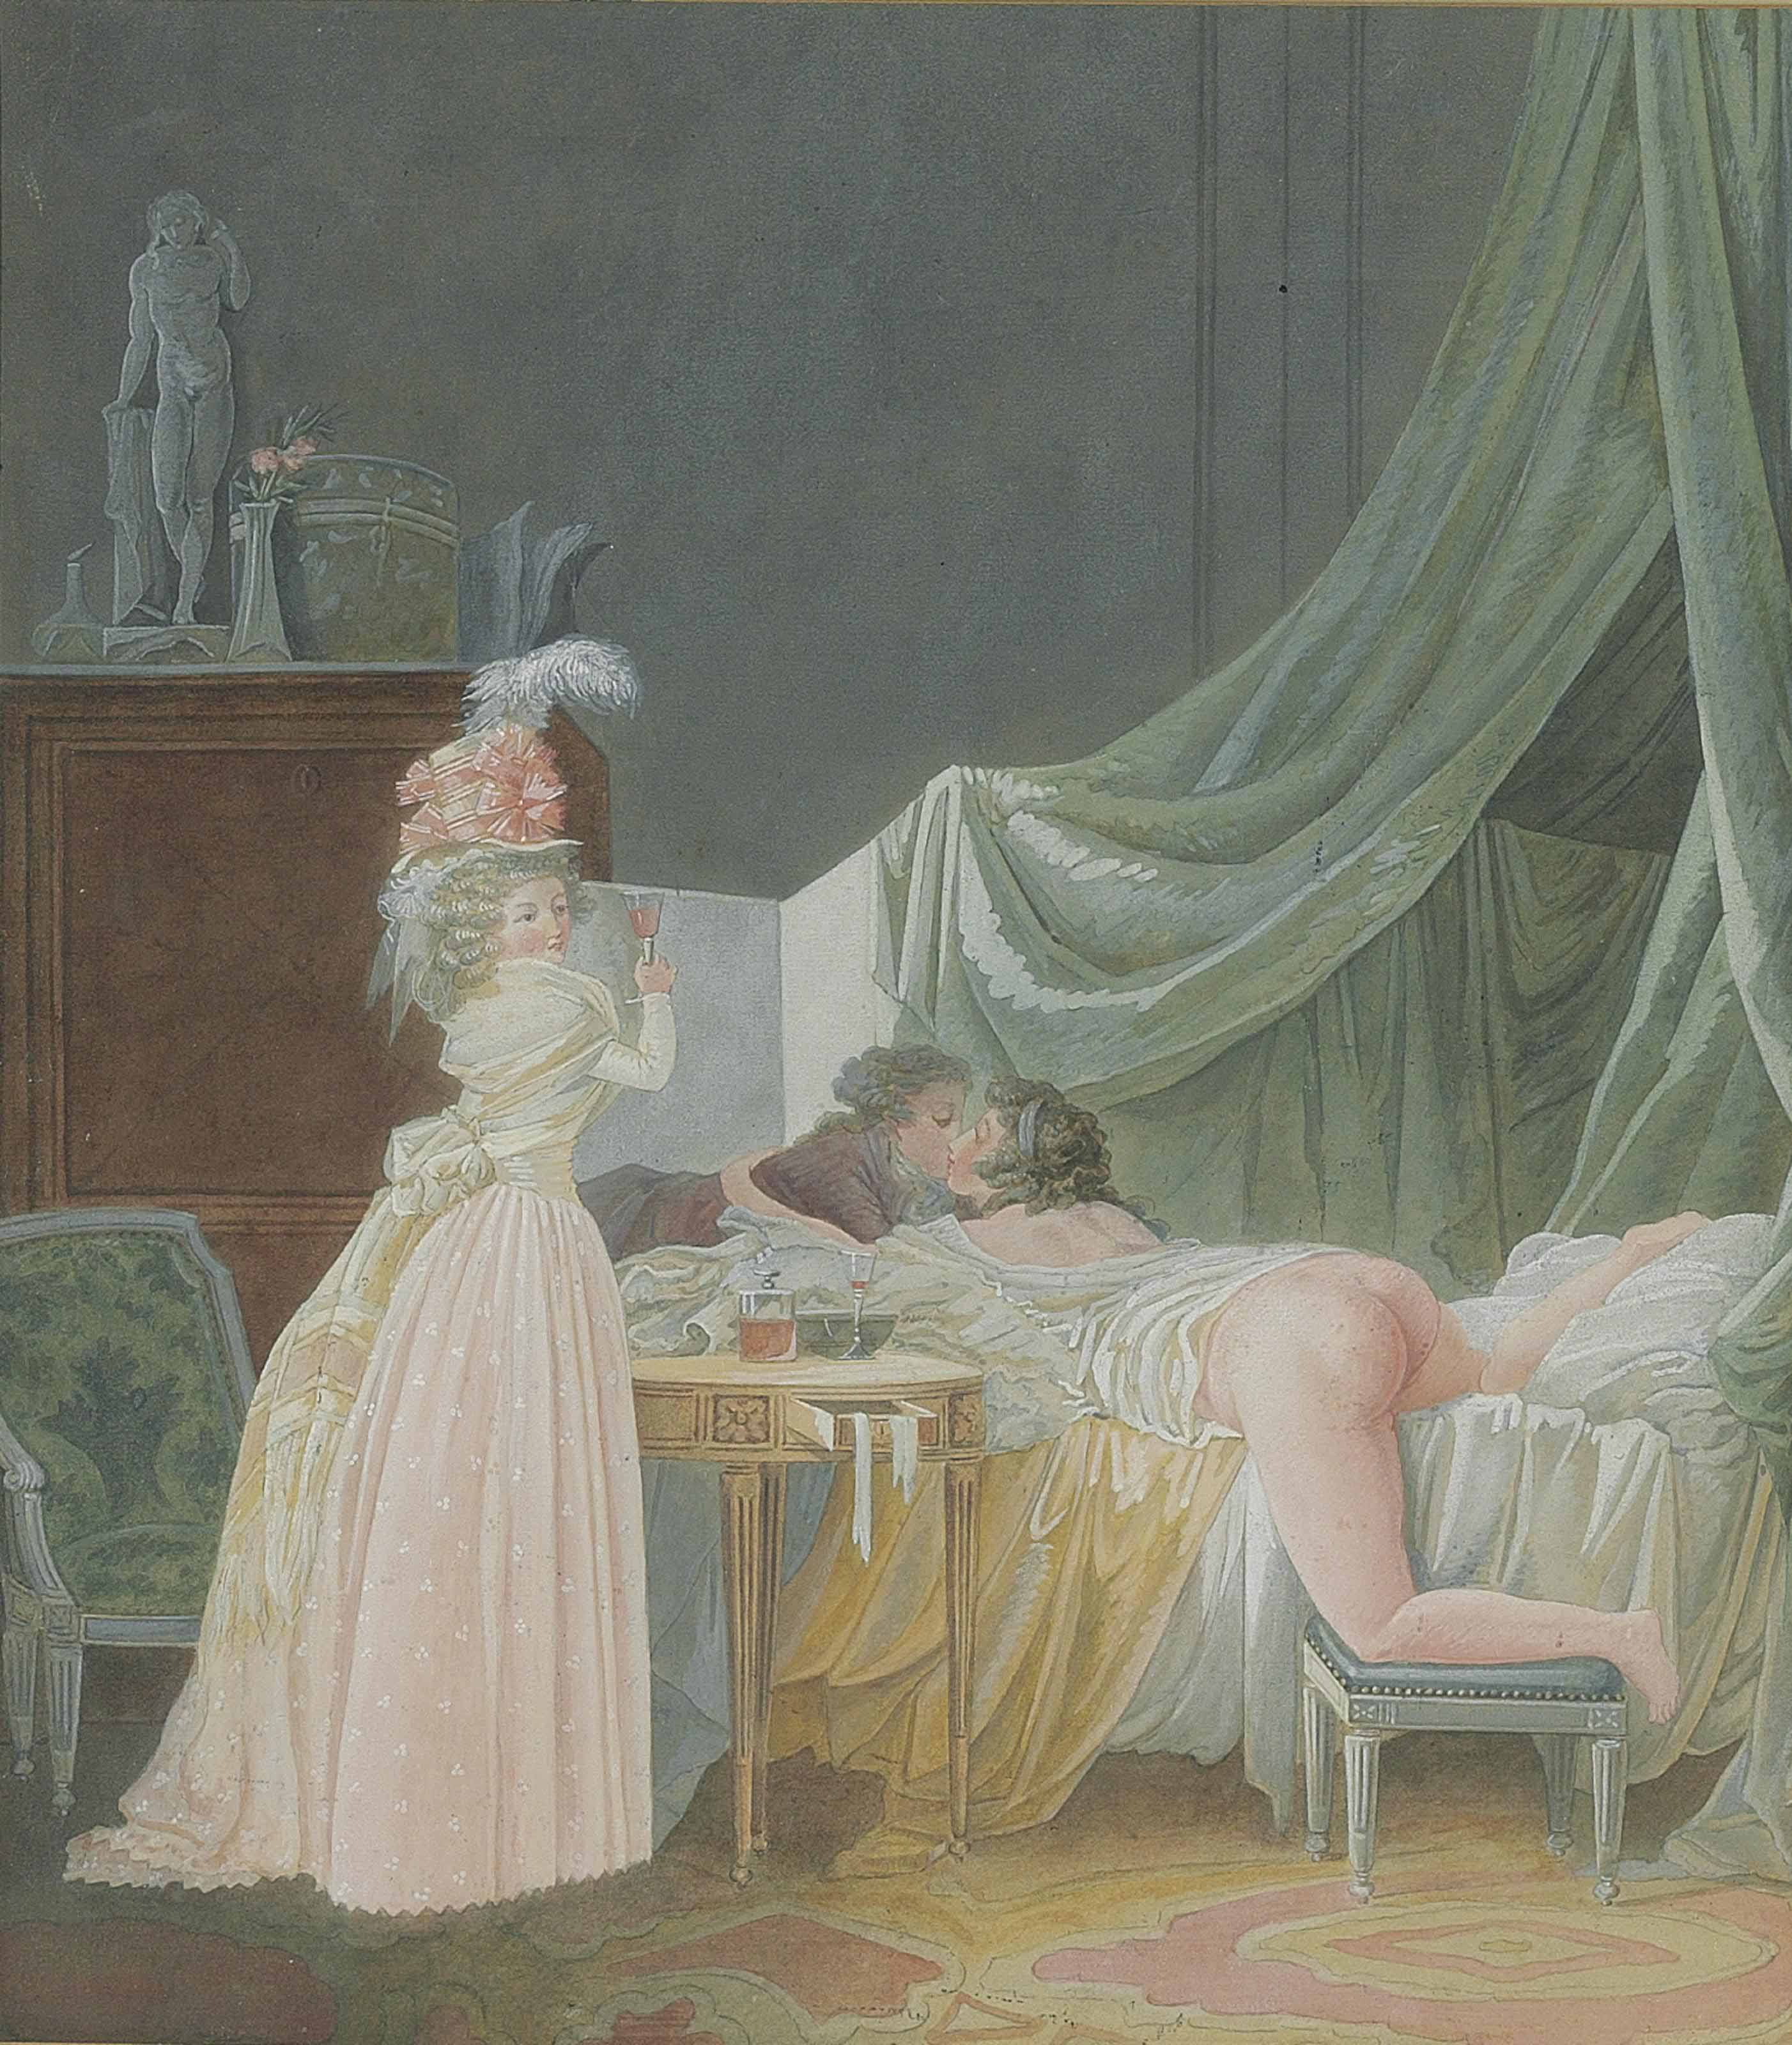 Lovers in a bedroom with a woman drinking a glass of wine